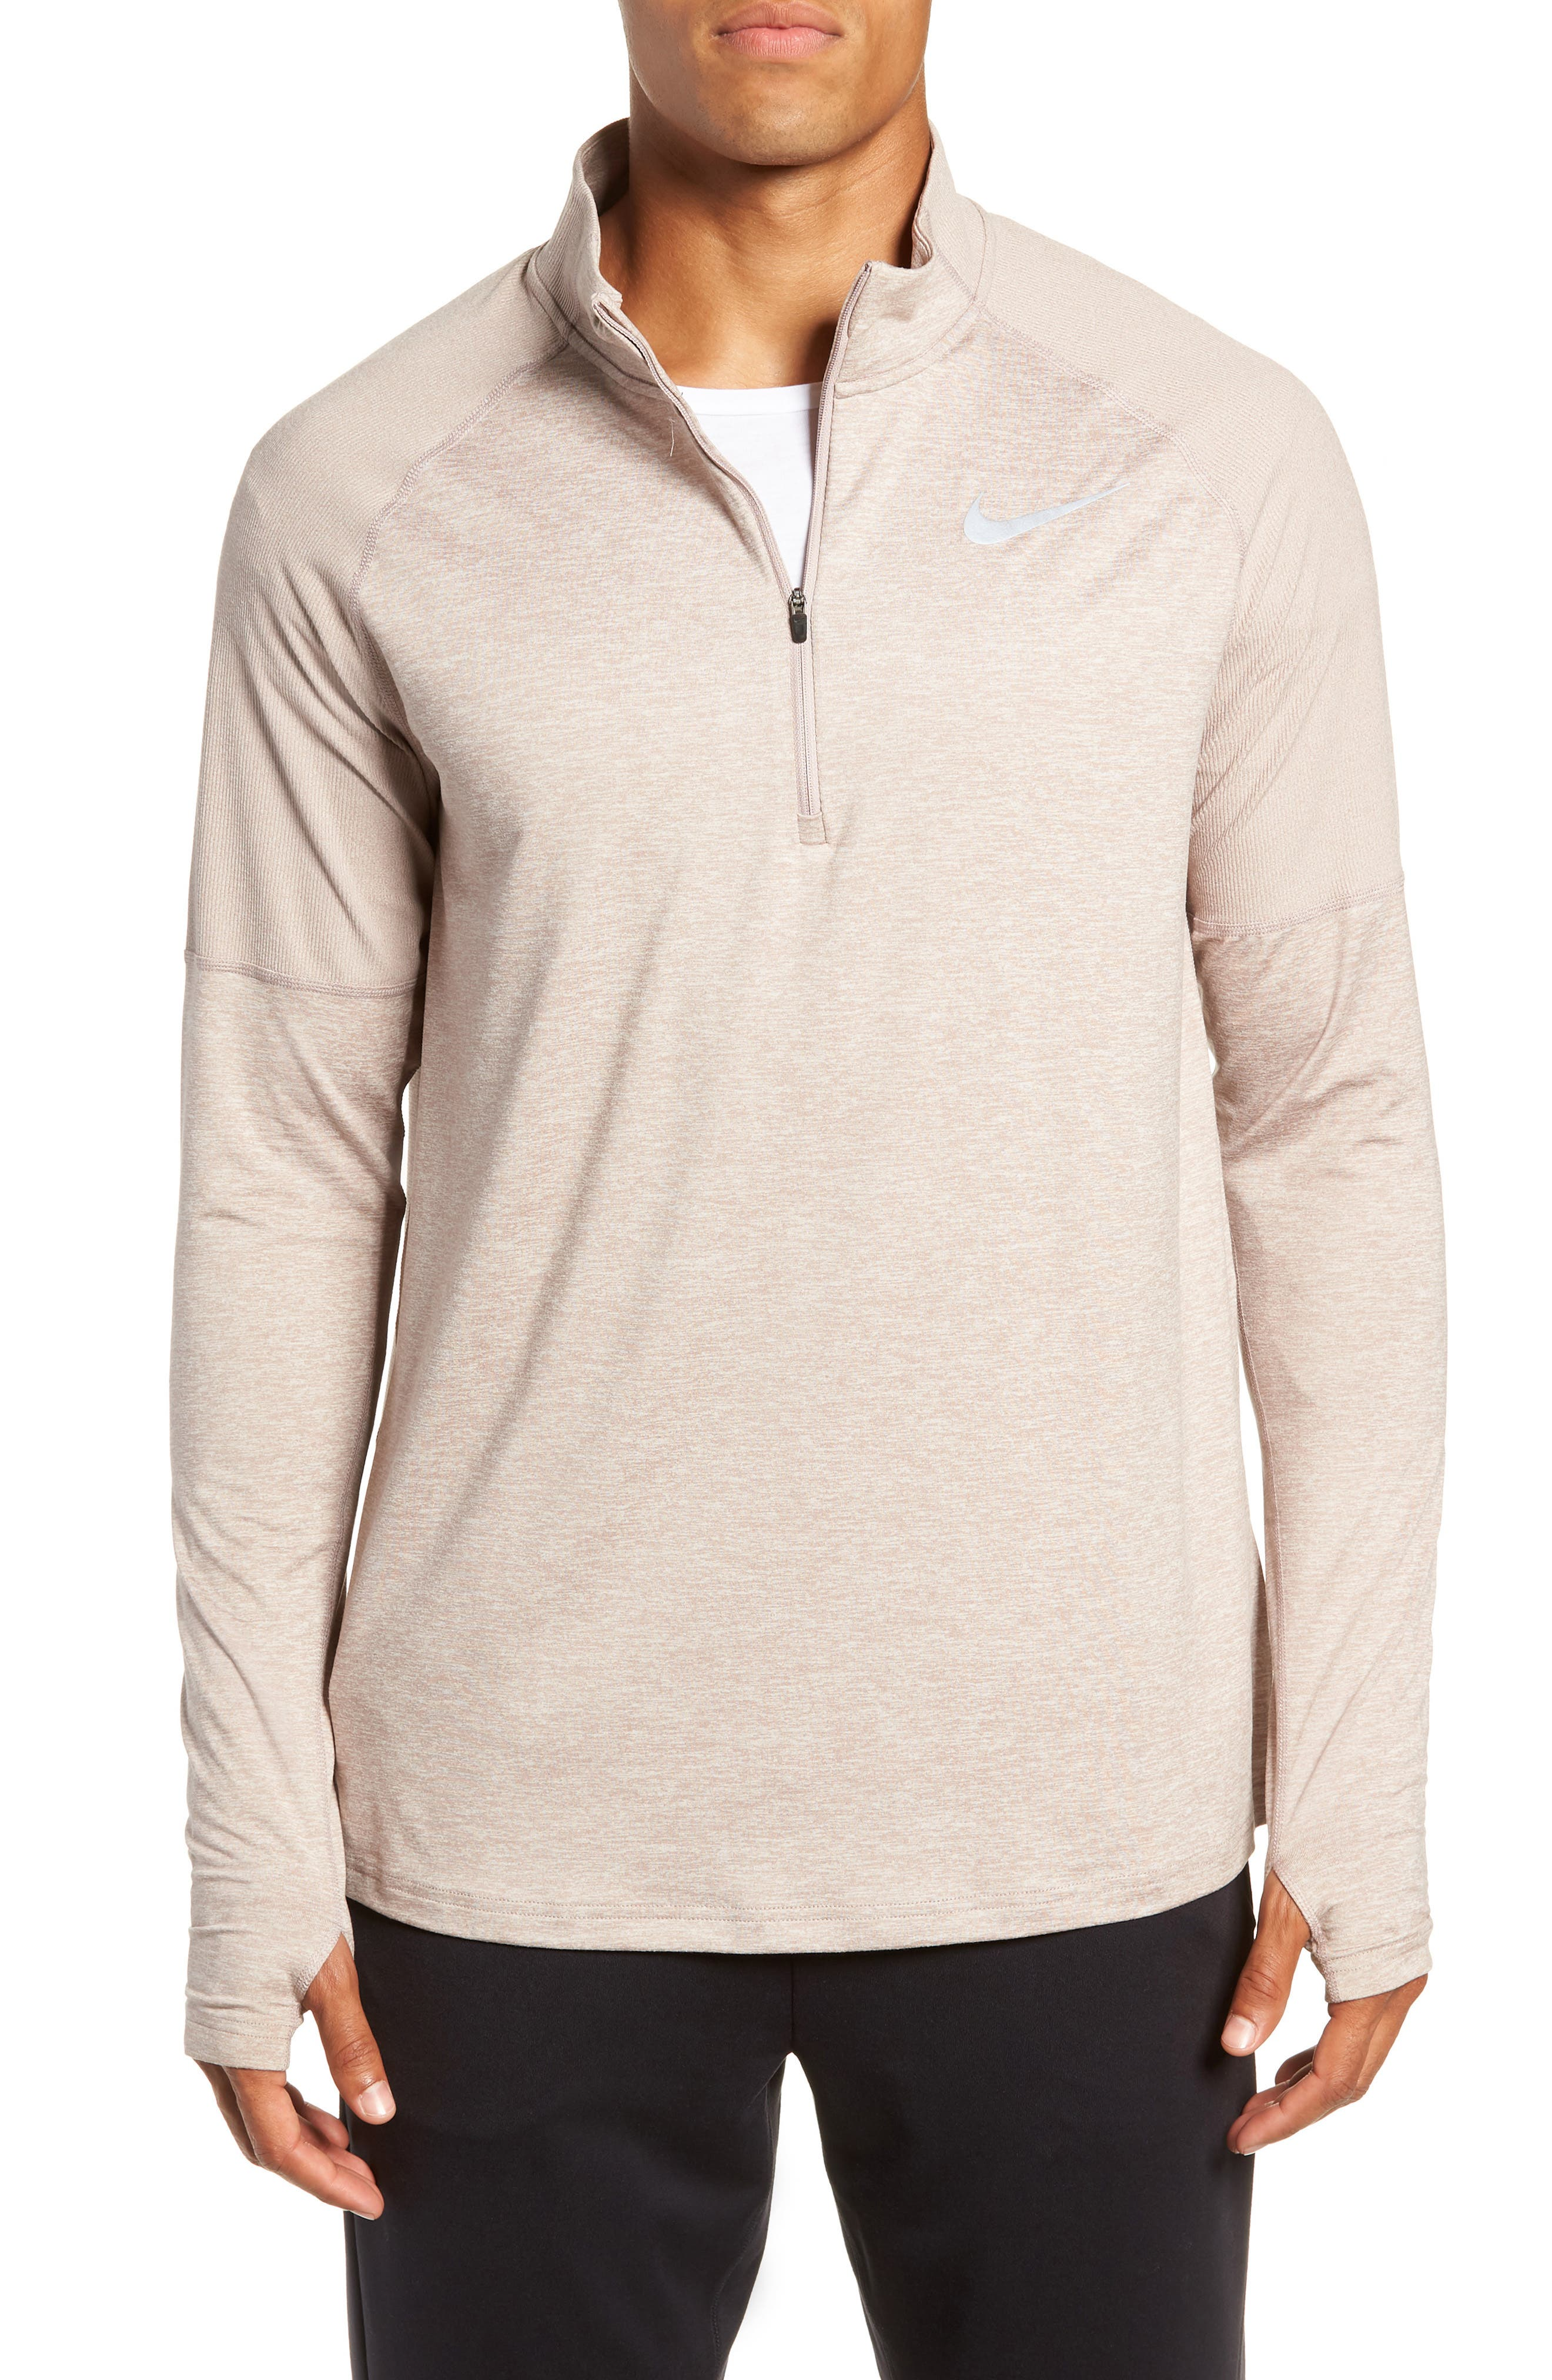 Element HZ 2.0 Performance Pullover,                         Main,                         color, DIFFUSED TAUPE/ SAND/ HEATHER